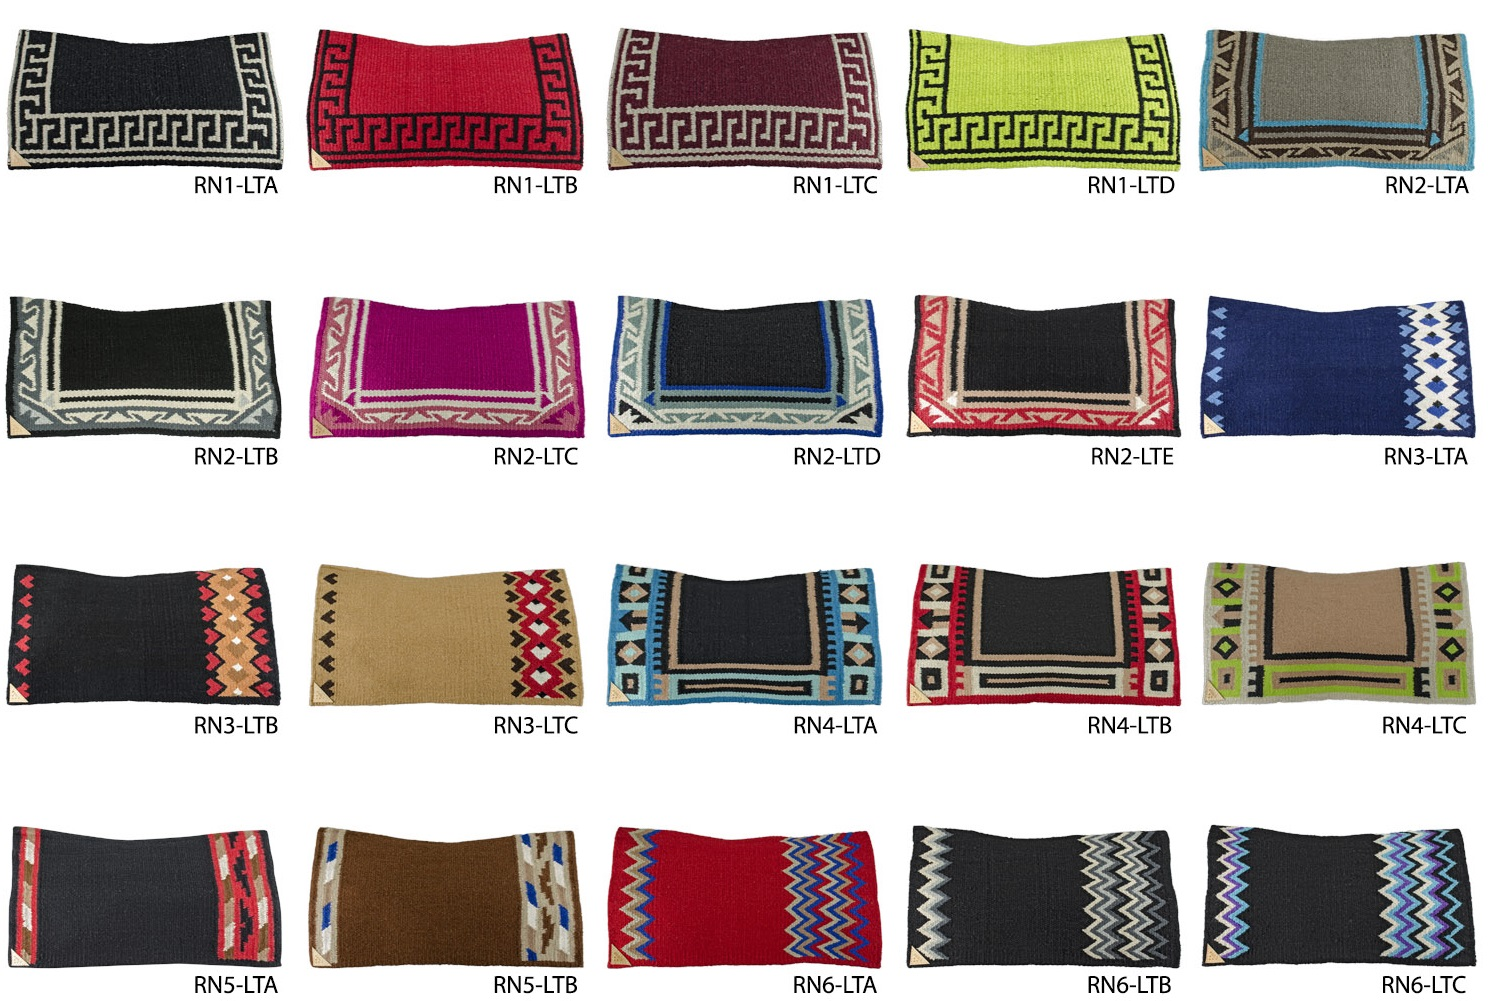 Saddle Blanket Star Pro Pool´s RN1-LTA